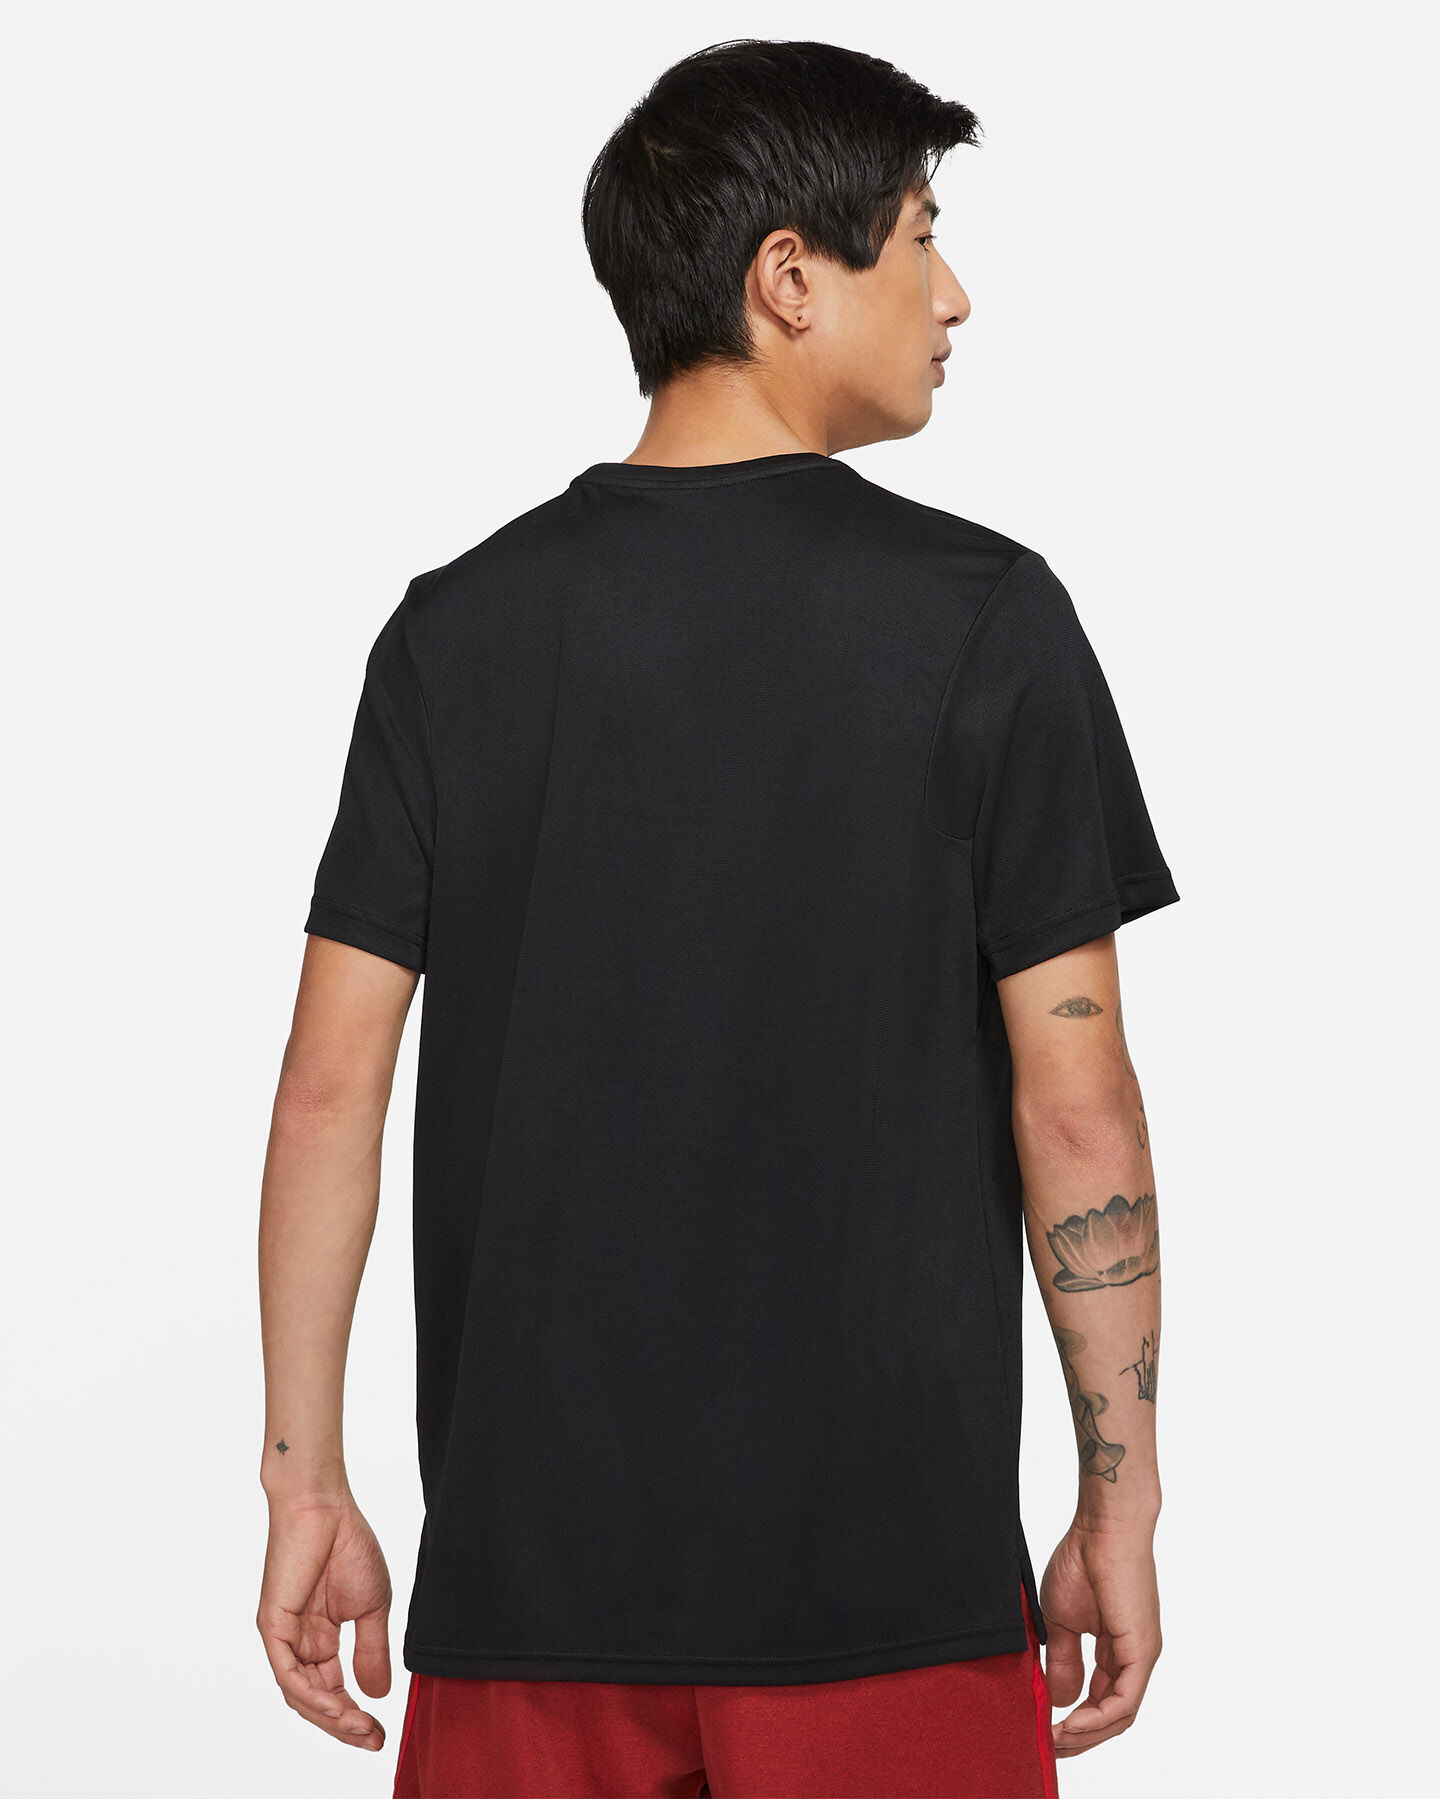 T-Shirt training NIKE DRY SUPERSET ENERGY M S5269658 scatto 1